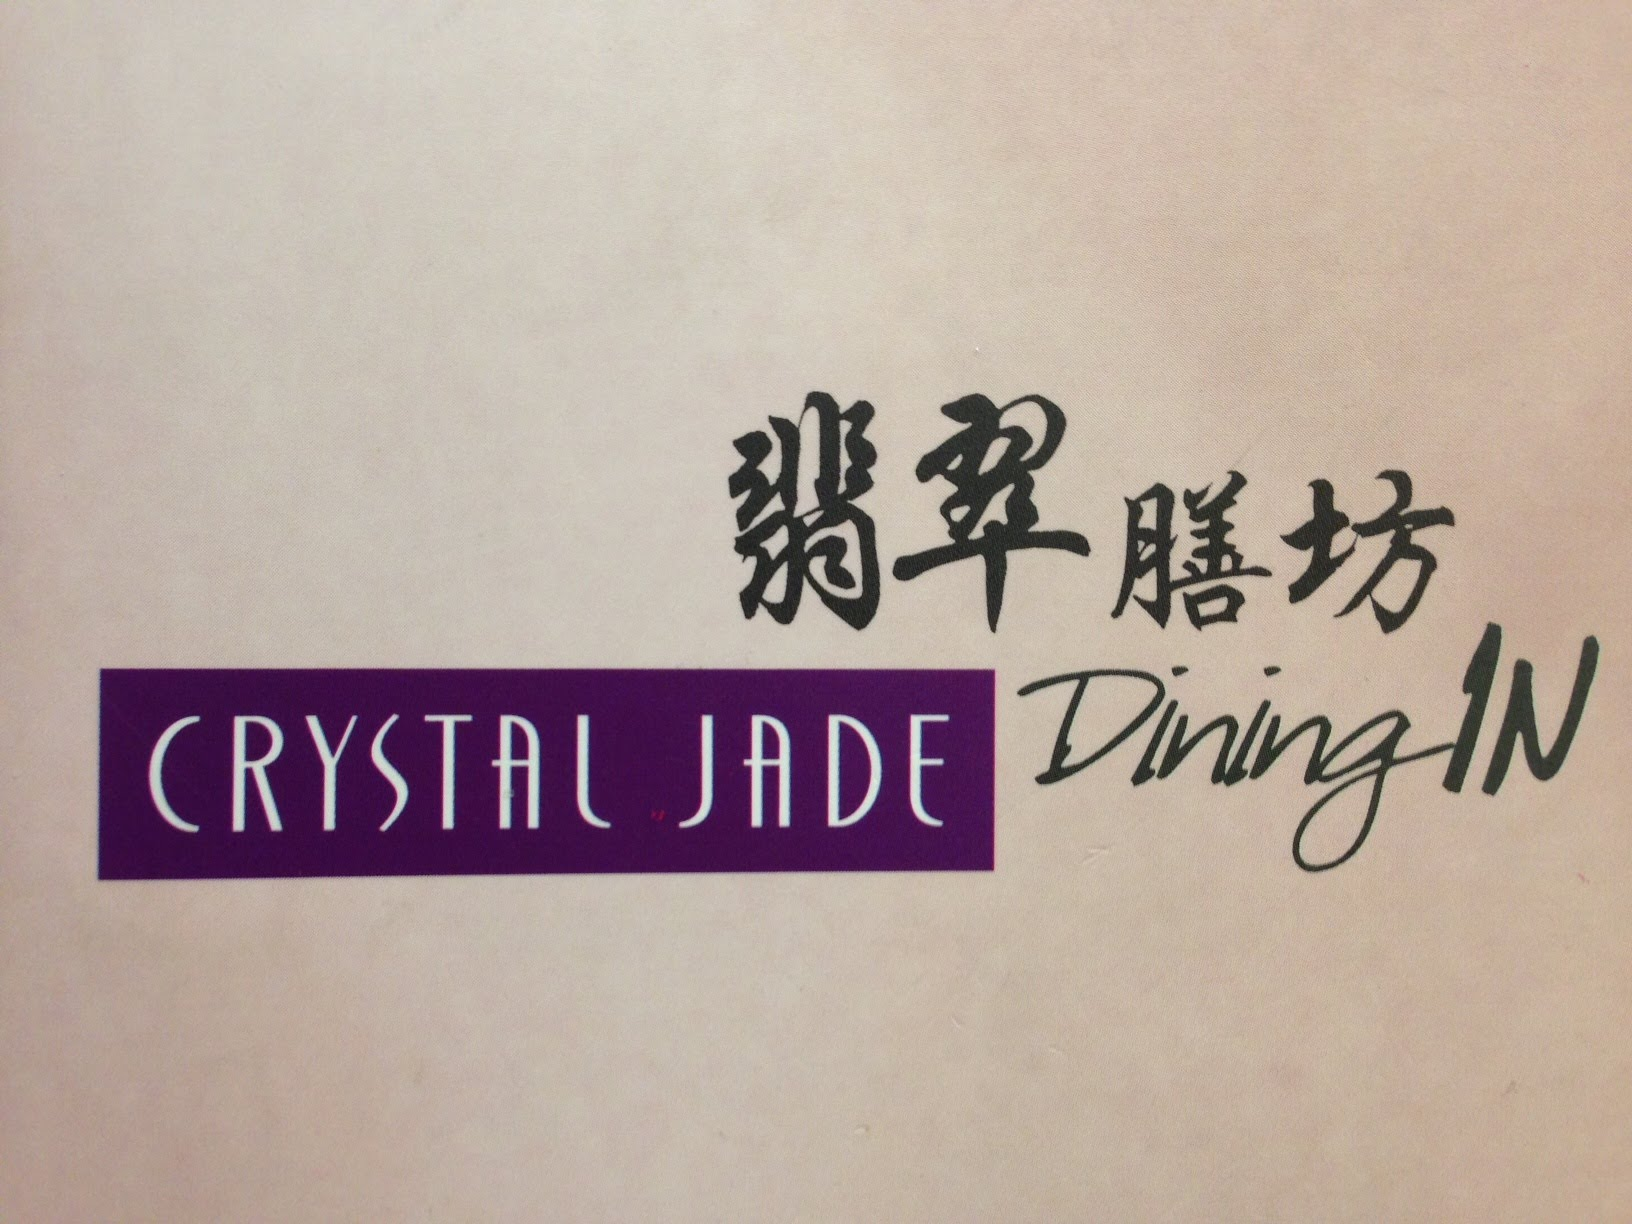 Crystal Jade Dining In